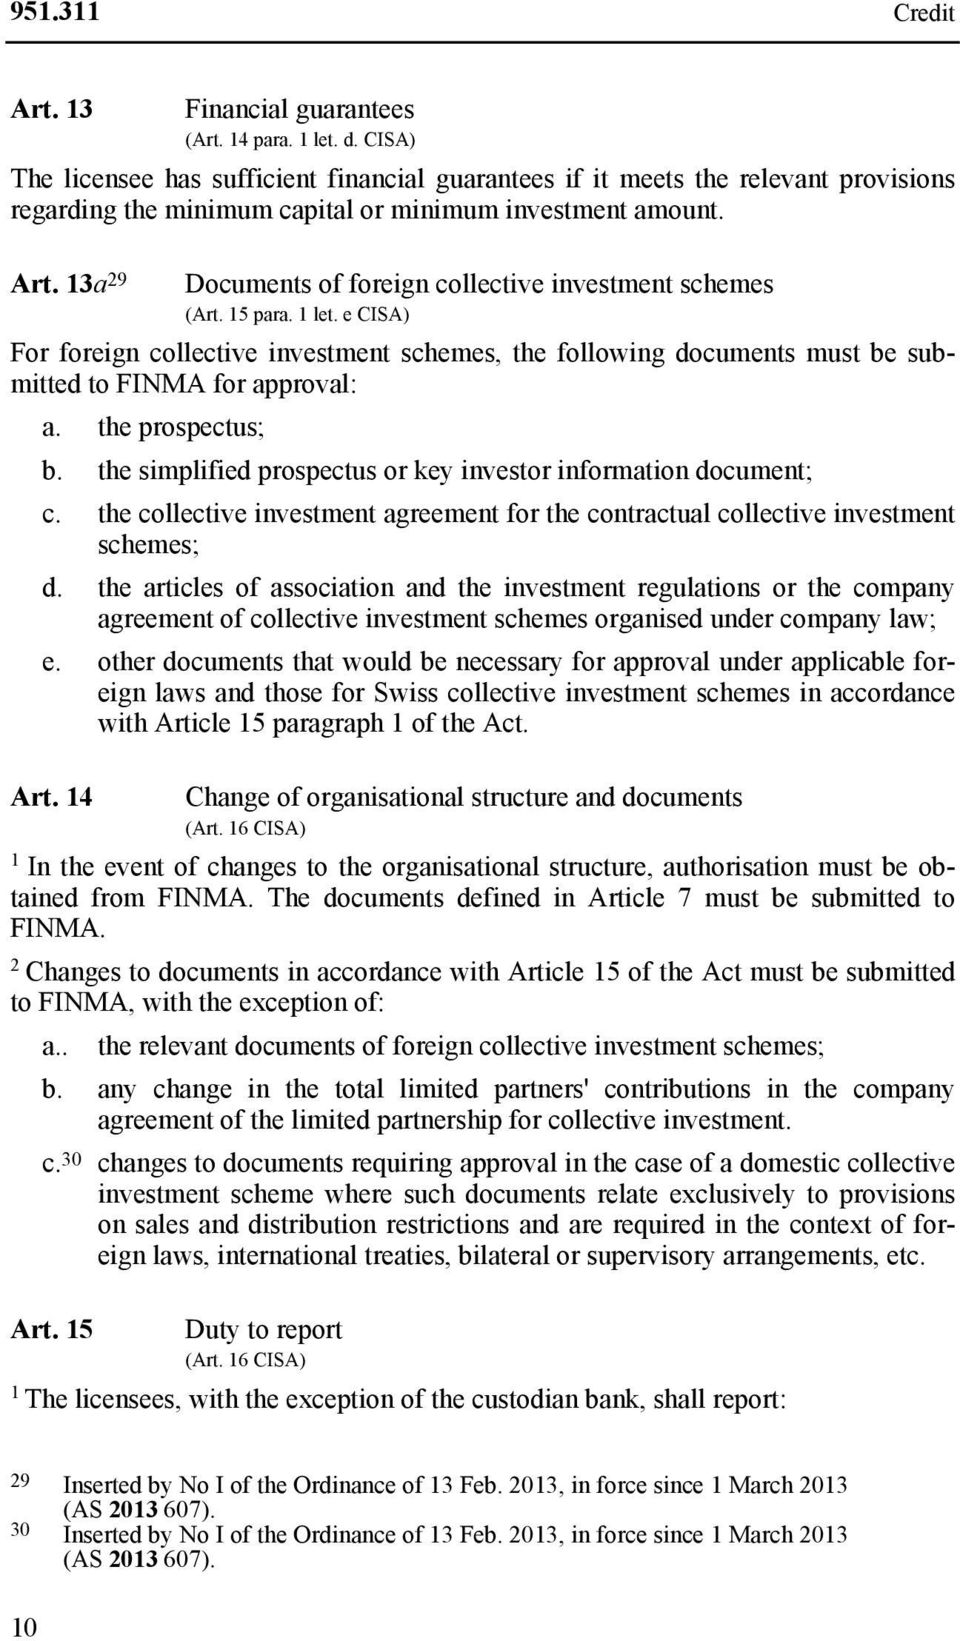 13a 29 Documents of foreign collective investment schemes (Art. 15 para. 1 let. e CISA) For foreign collective investment schemes, the following documents must be submitted to FINMA for approval: a.